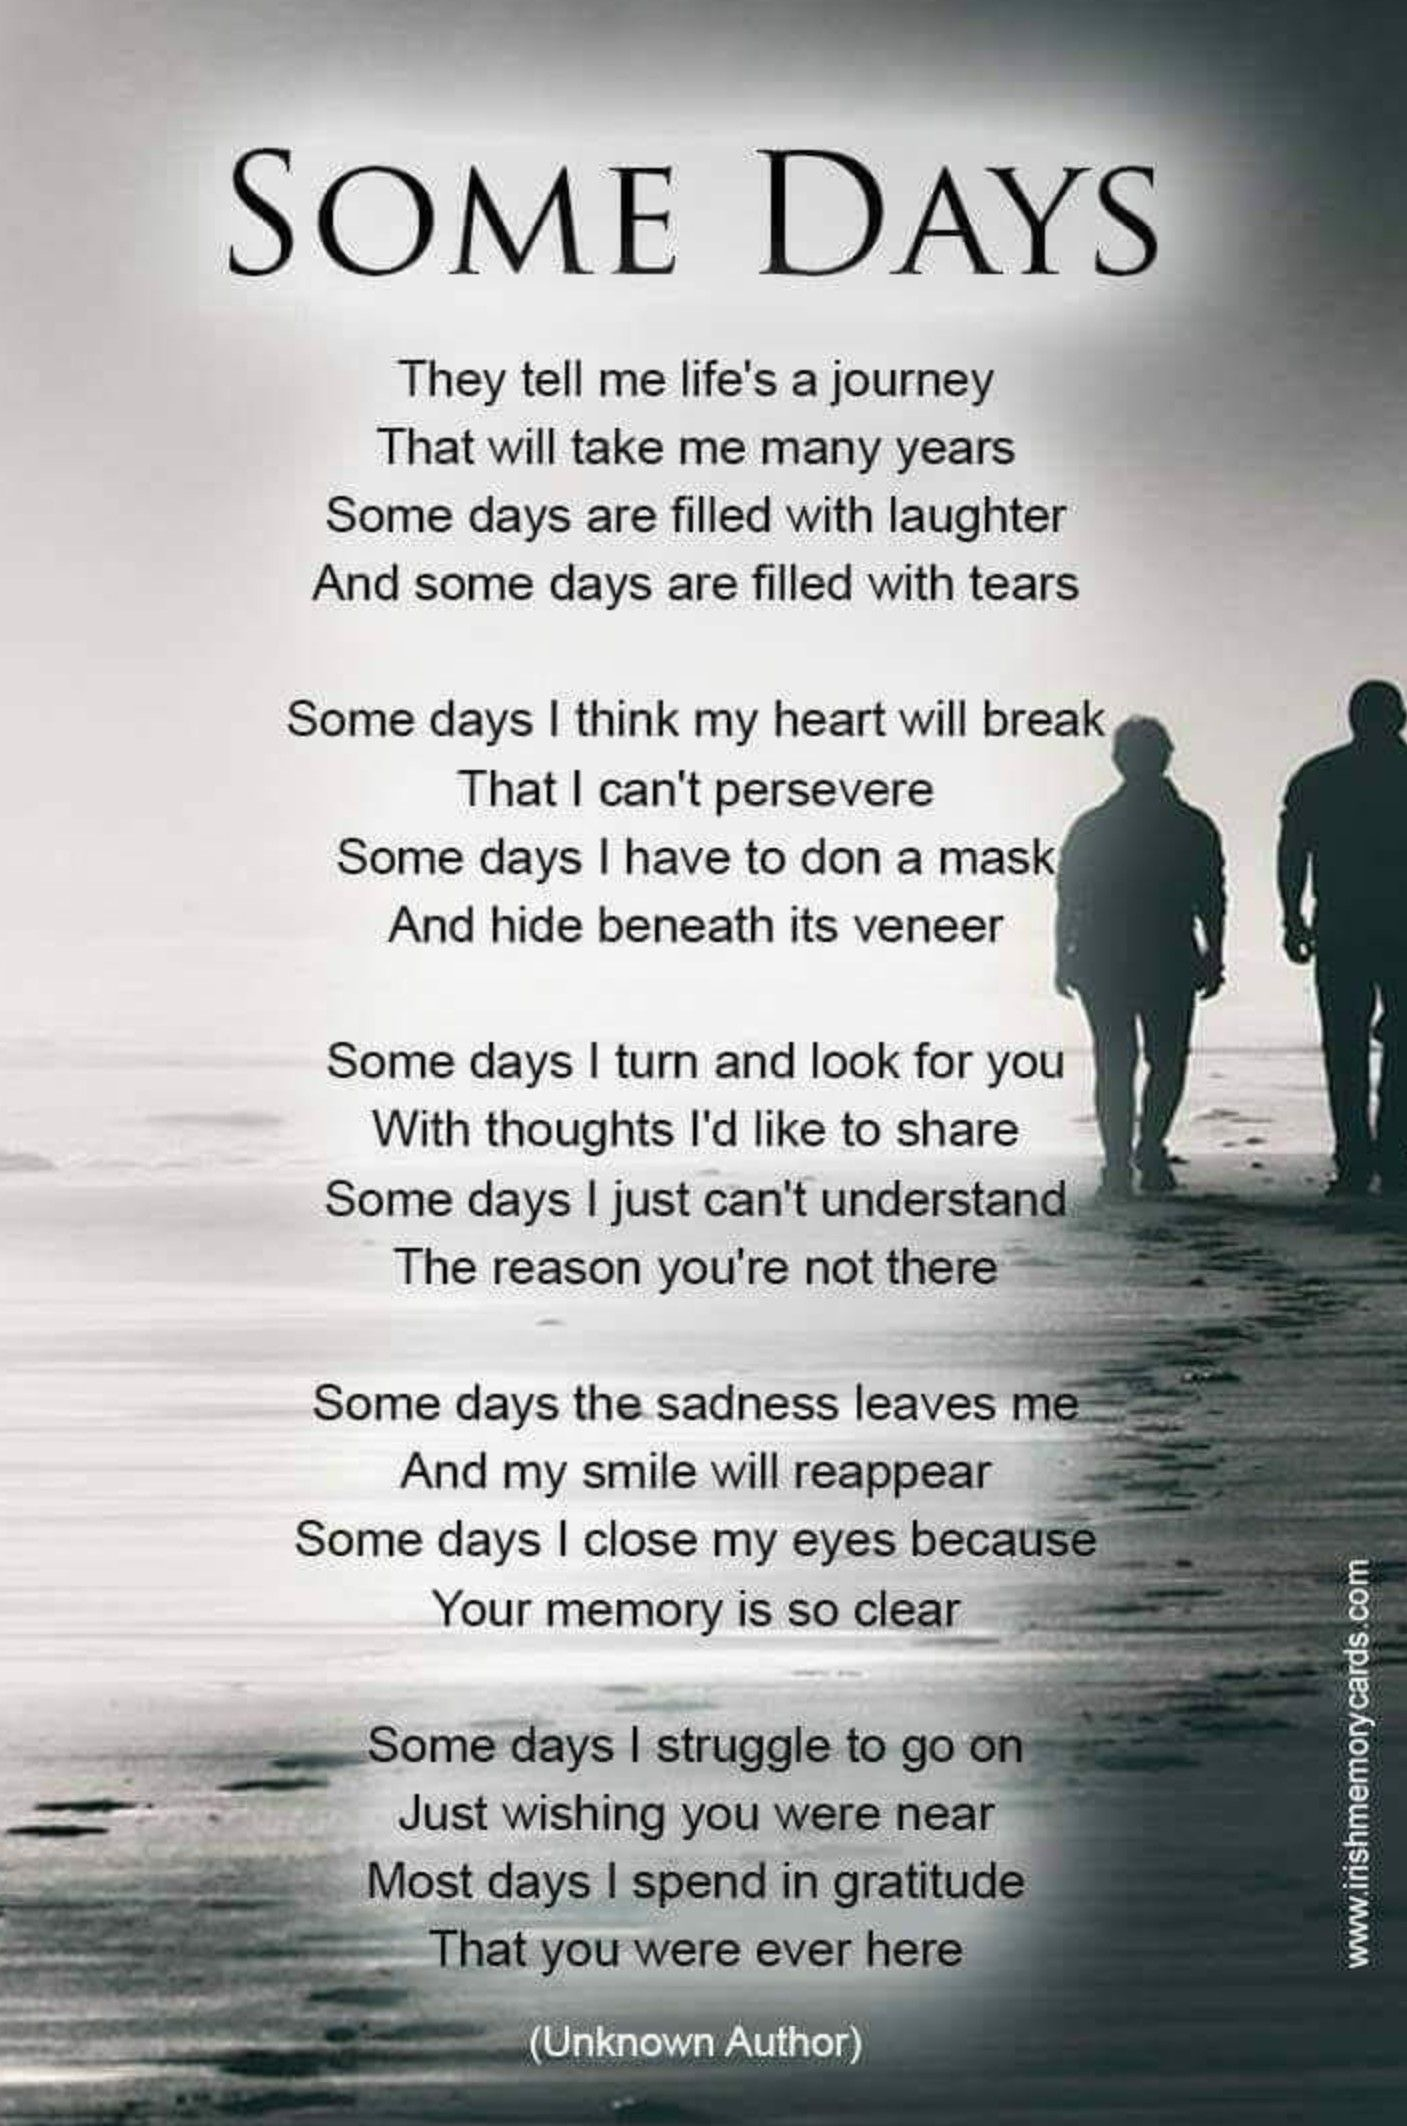 So true. Missing my son so very much. Grieving quotes, I